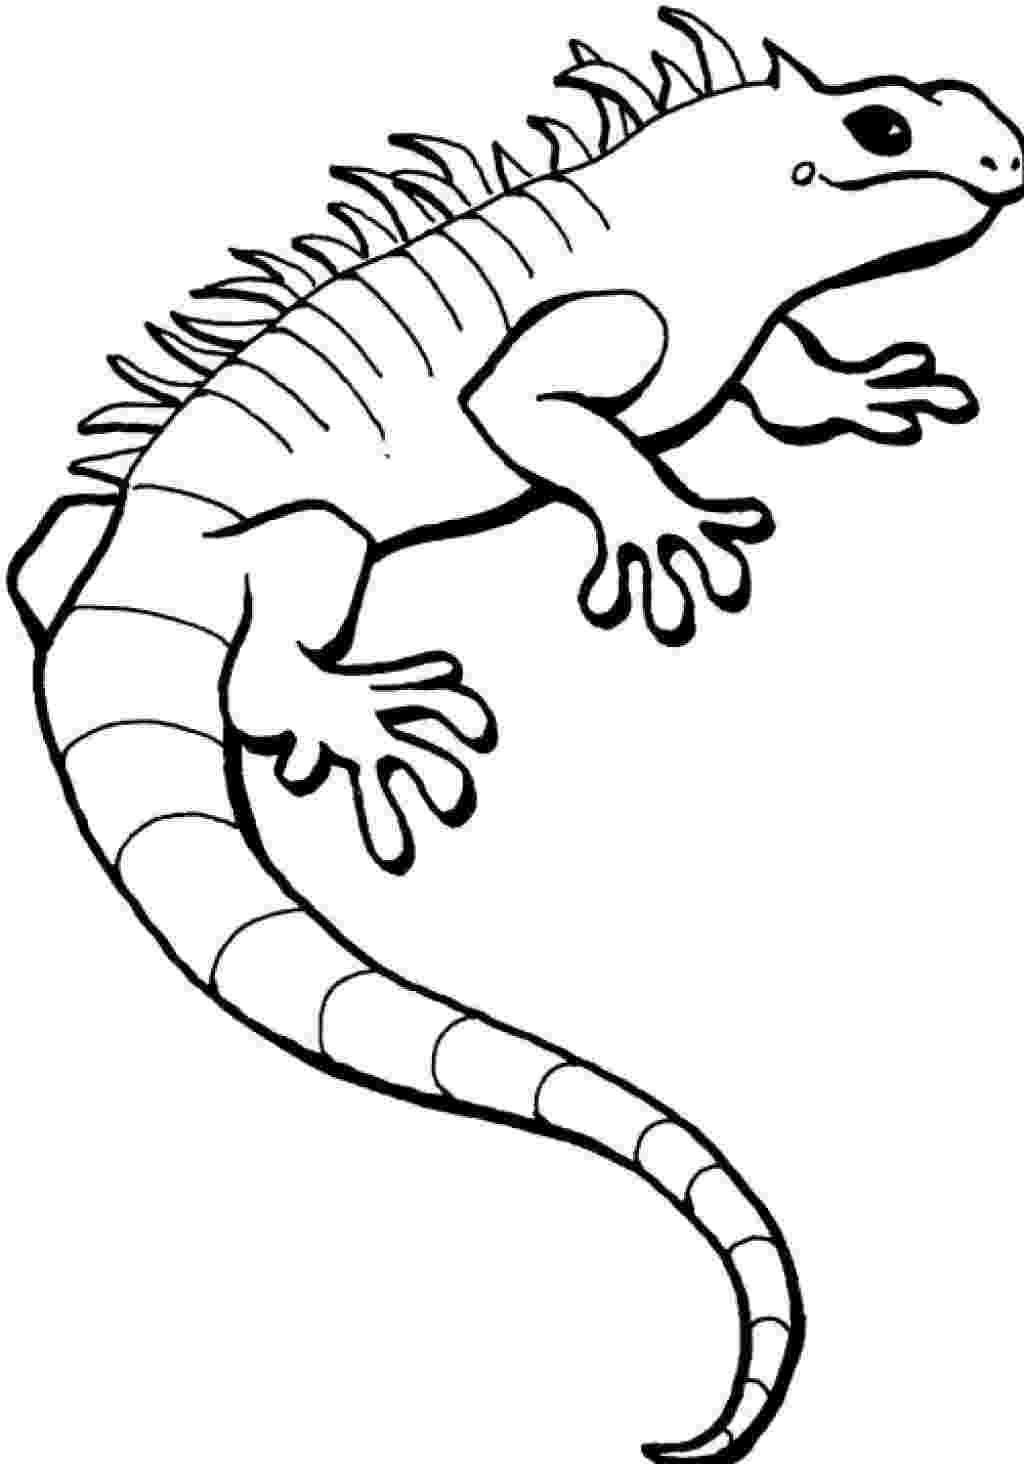 iguana coloring page free printable iguana coloring pages for kids page iguana coloring